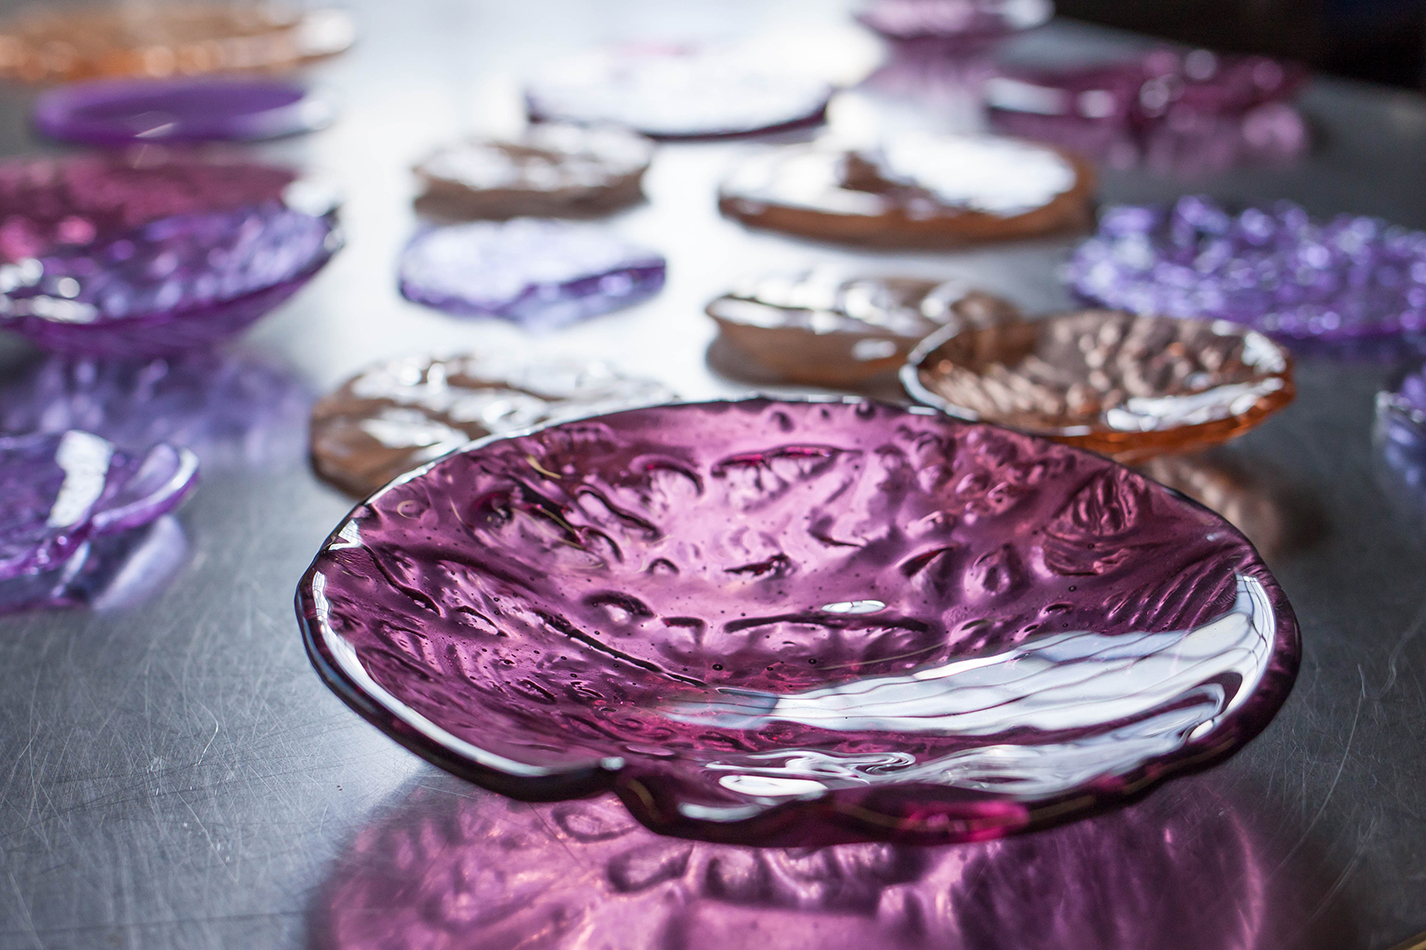 The Corner Store Gallery - studio visit and interview with glass artists Alexandra Frasersmith